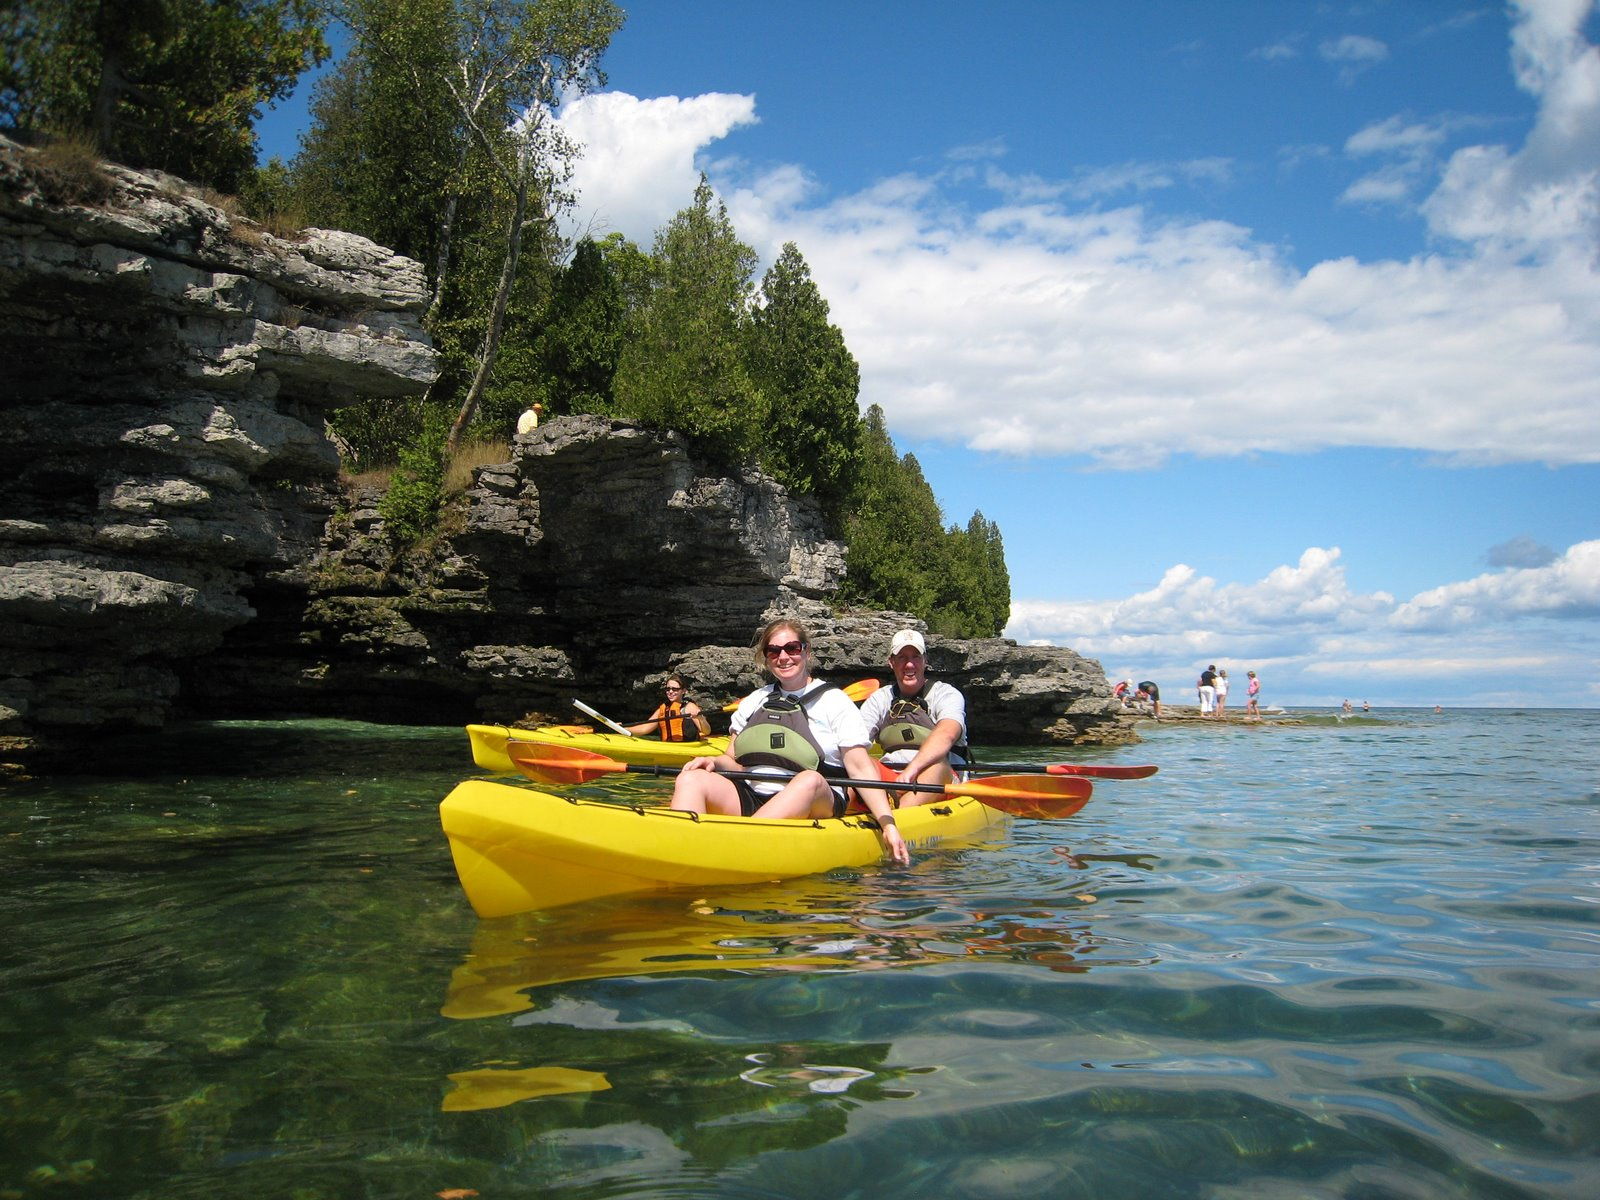 Kayaking with Bluffs in Background